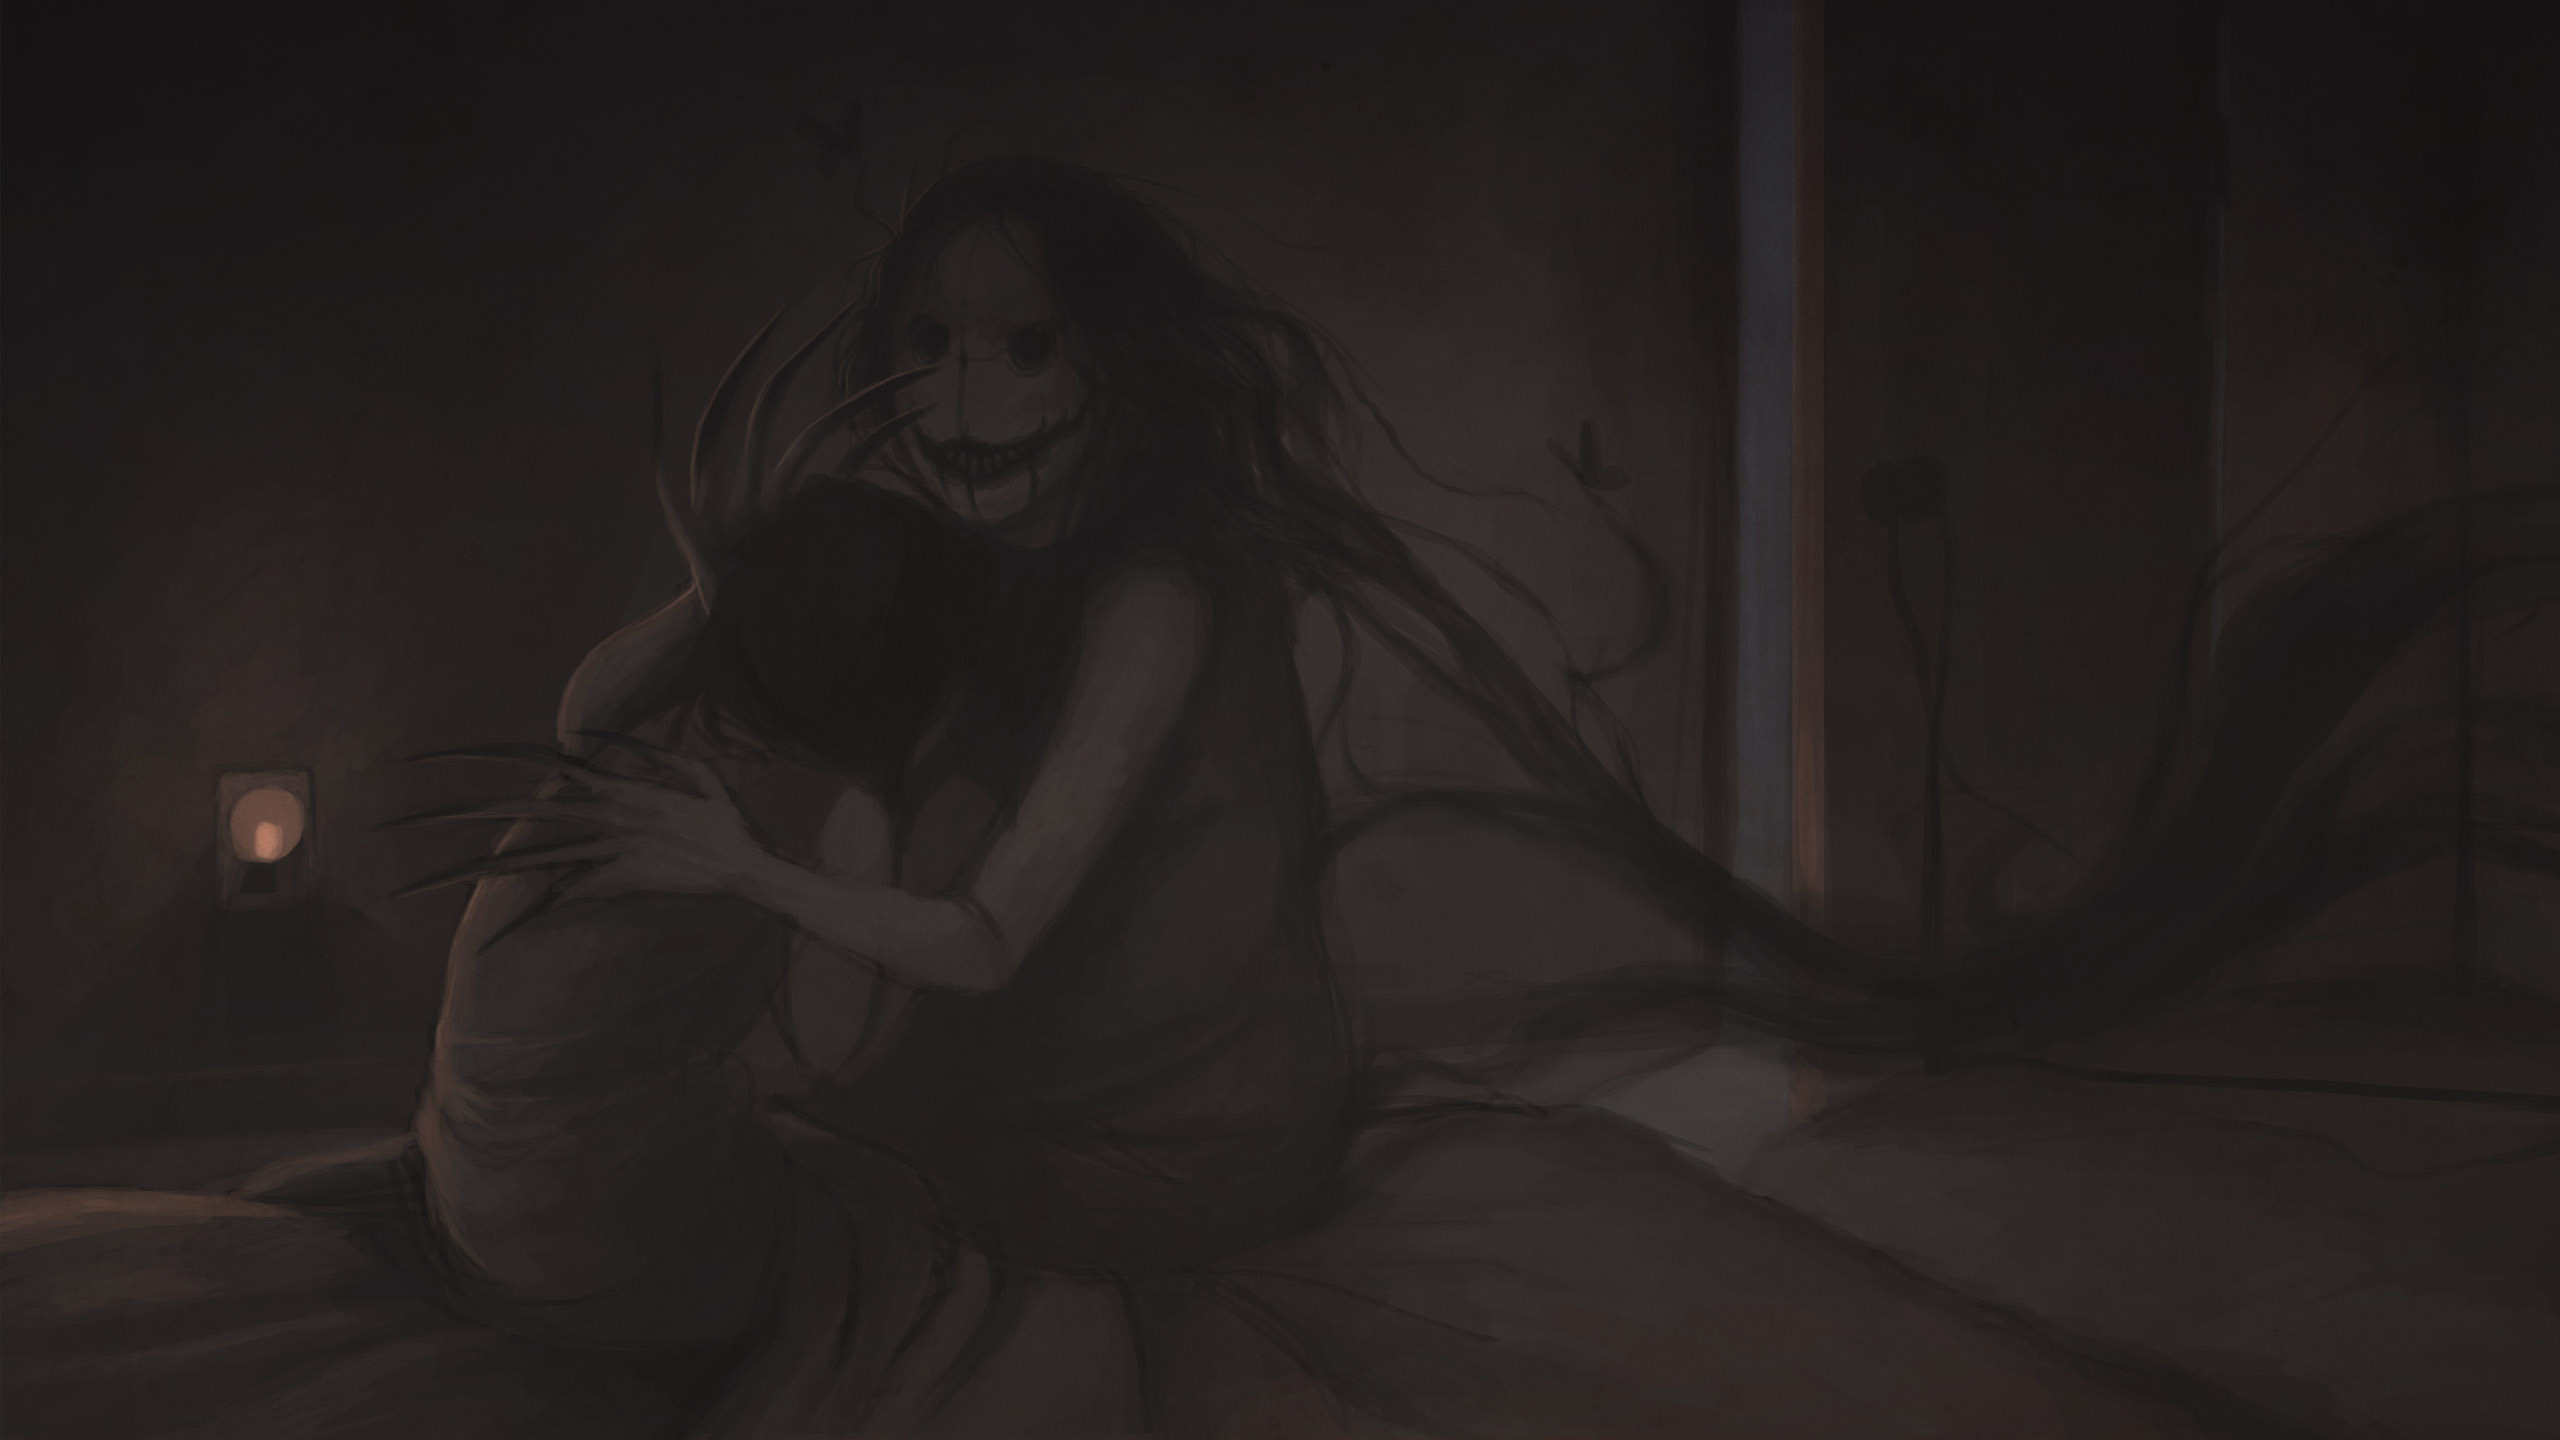 … Creepy monster from the closet HD Wallpaper 2560×1440